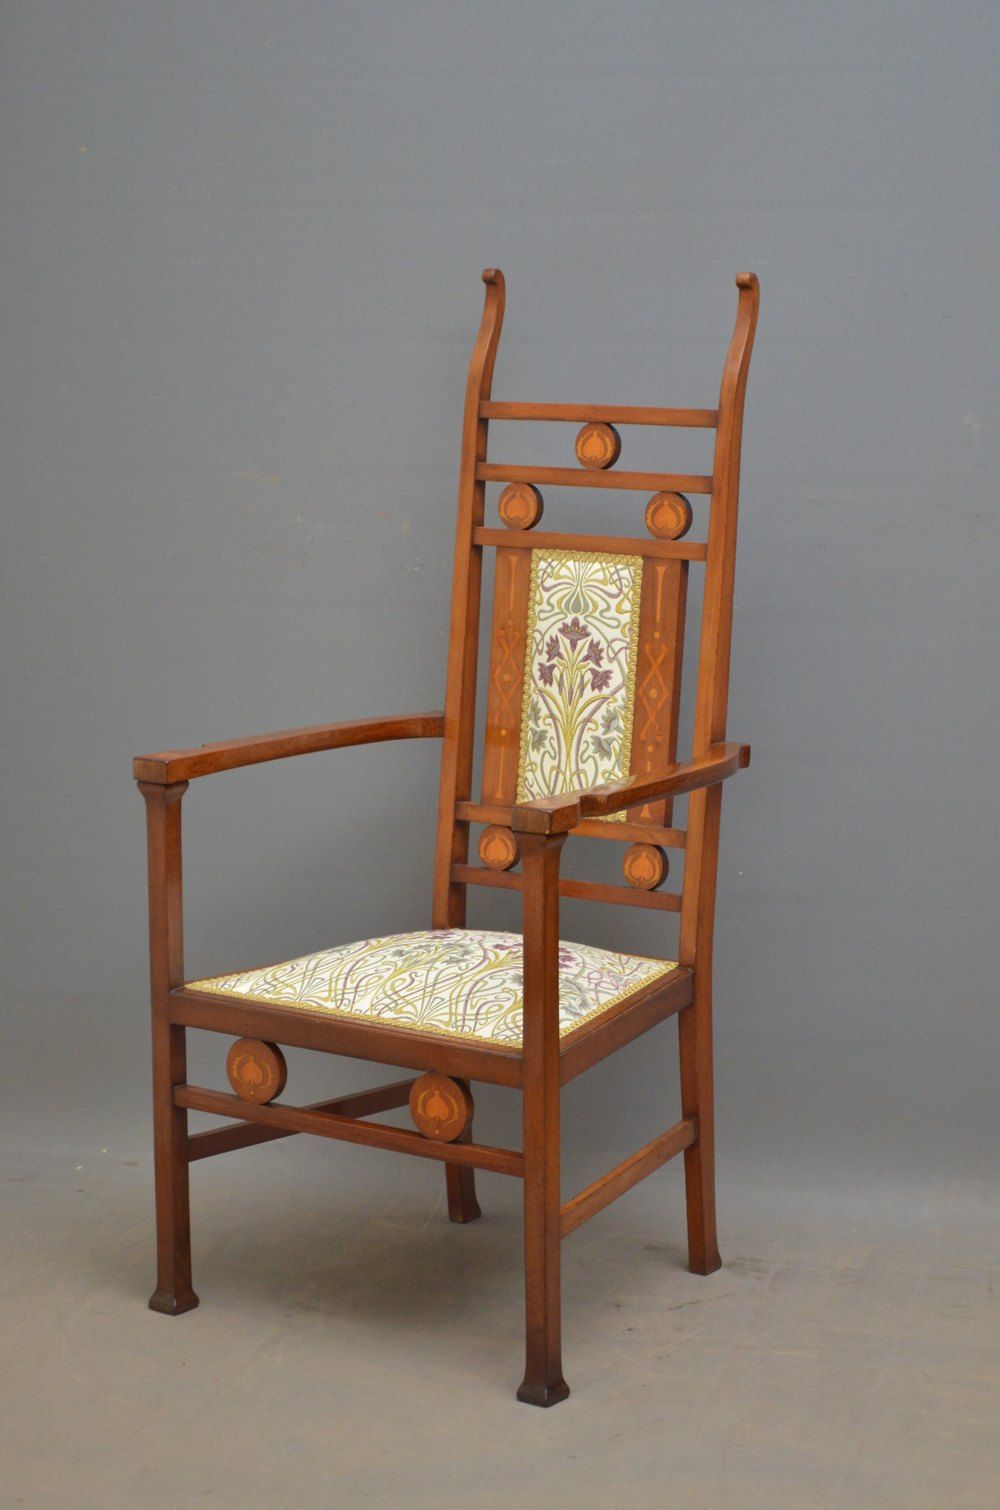 Arts And Crafts Mahogany Chair Arts And Crafts Interiors Art Chair Arts And Crafts Furniture